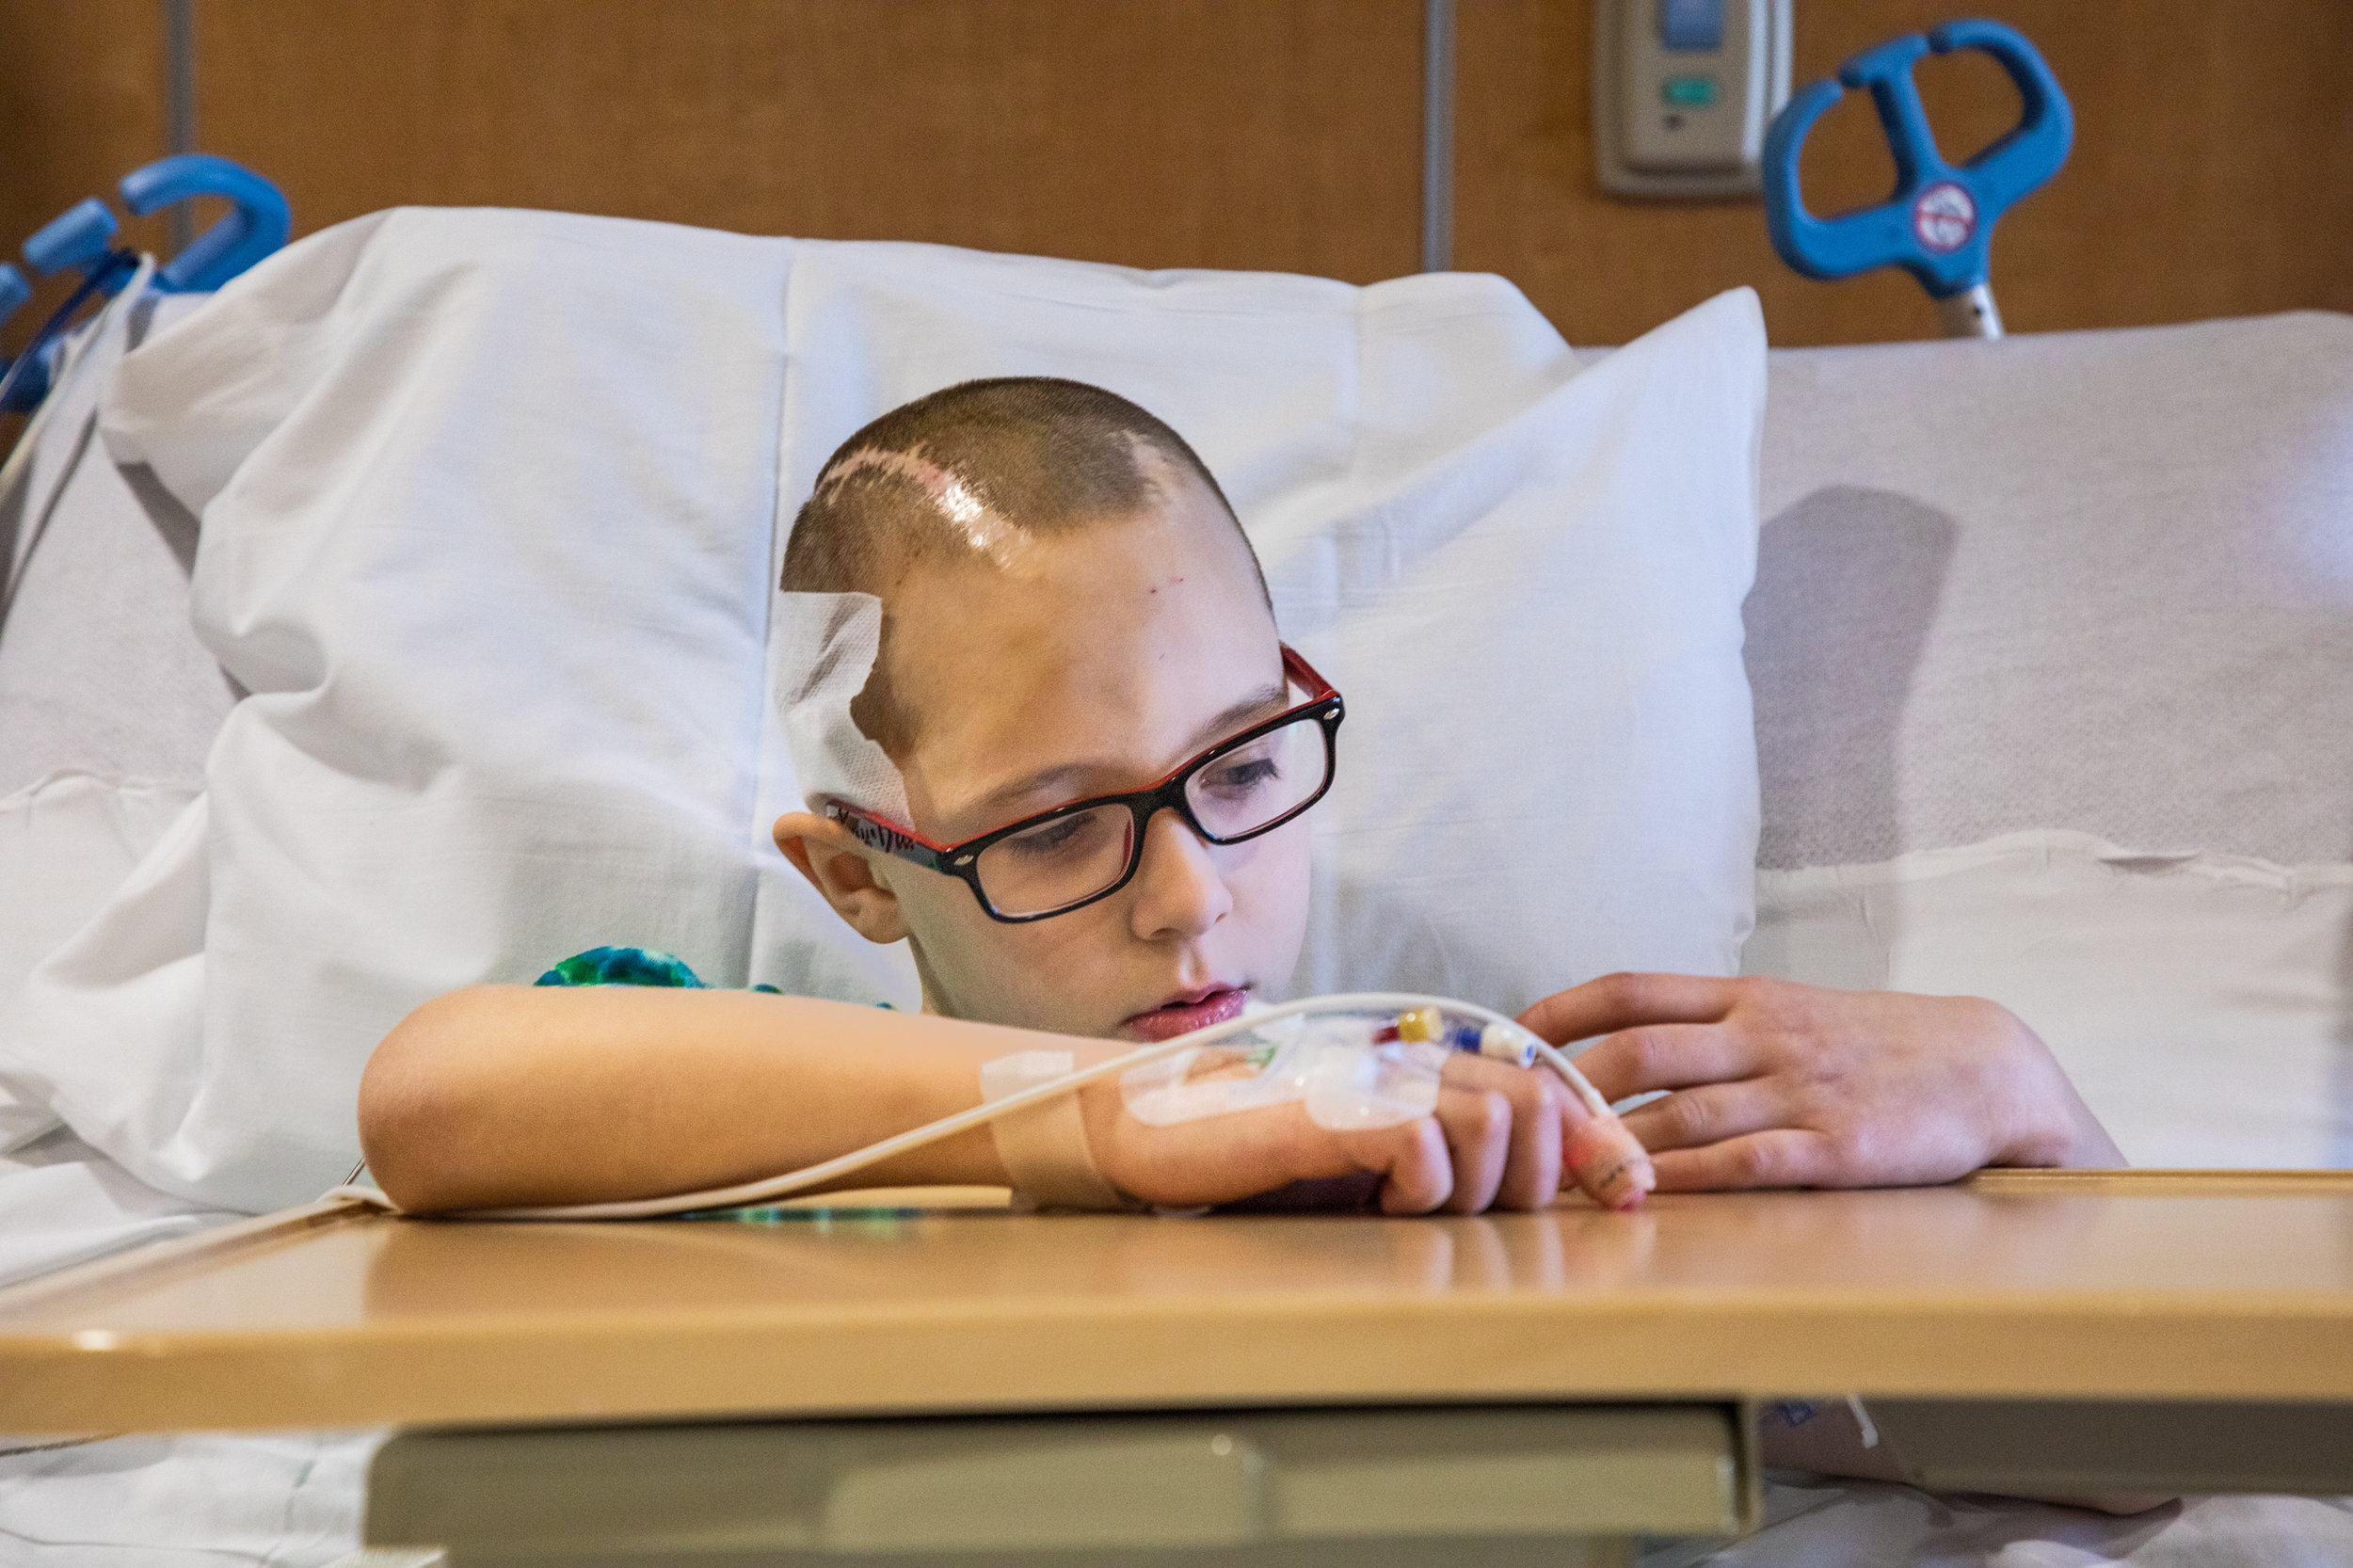 Christian looks at his hands while sitting in his hospital bed Feb. 25, 2019, after doctors removed a small tumor protruding on the right side of his head. This was Christian's fifth brain surgery in two years.